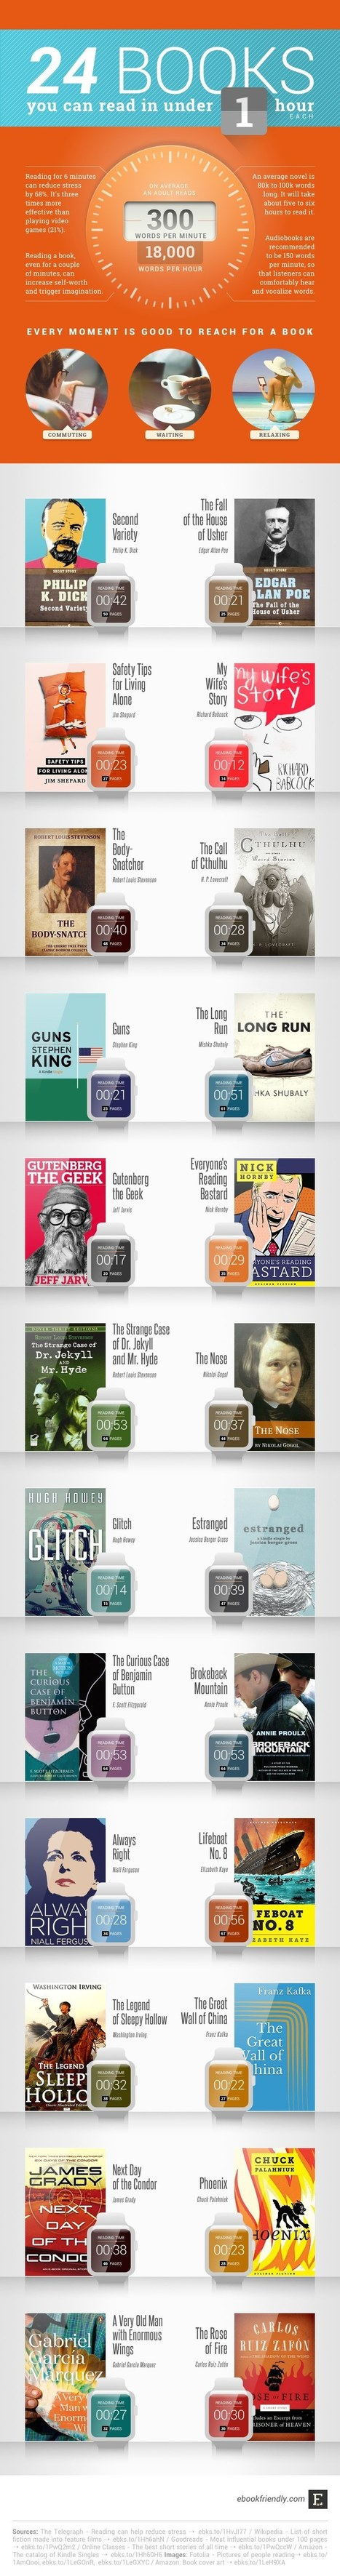 24 Books You Can Read In Under An Hour (Infographic) | Social Media Firestarter | Scoop.it